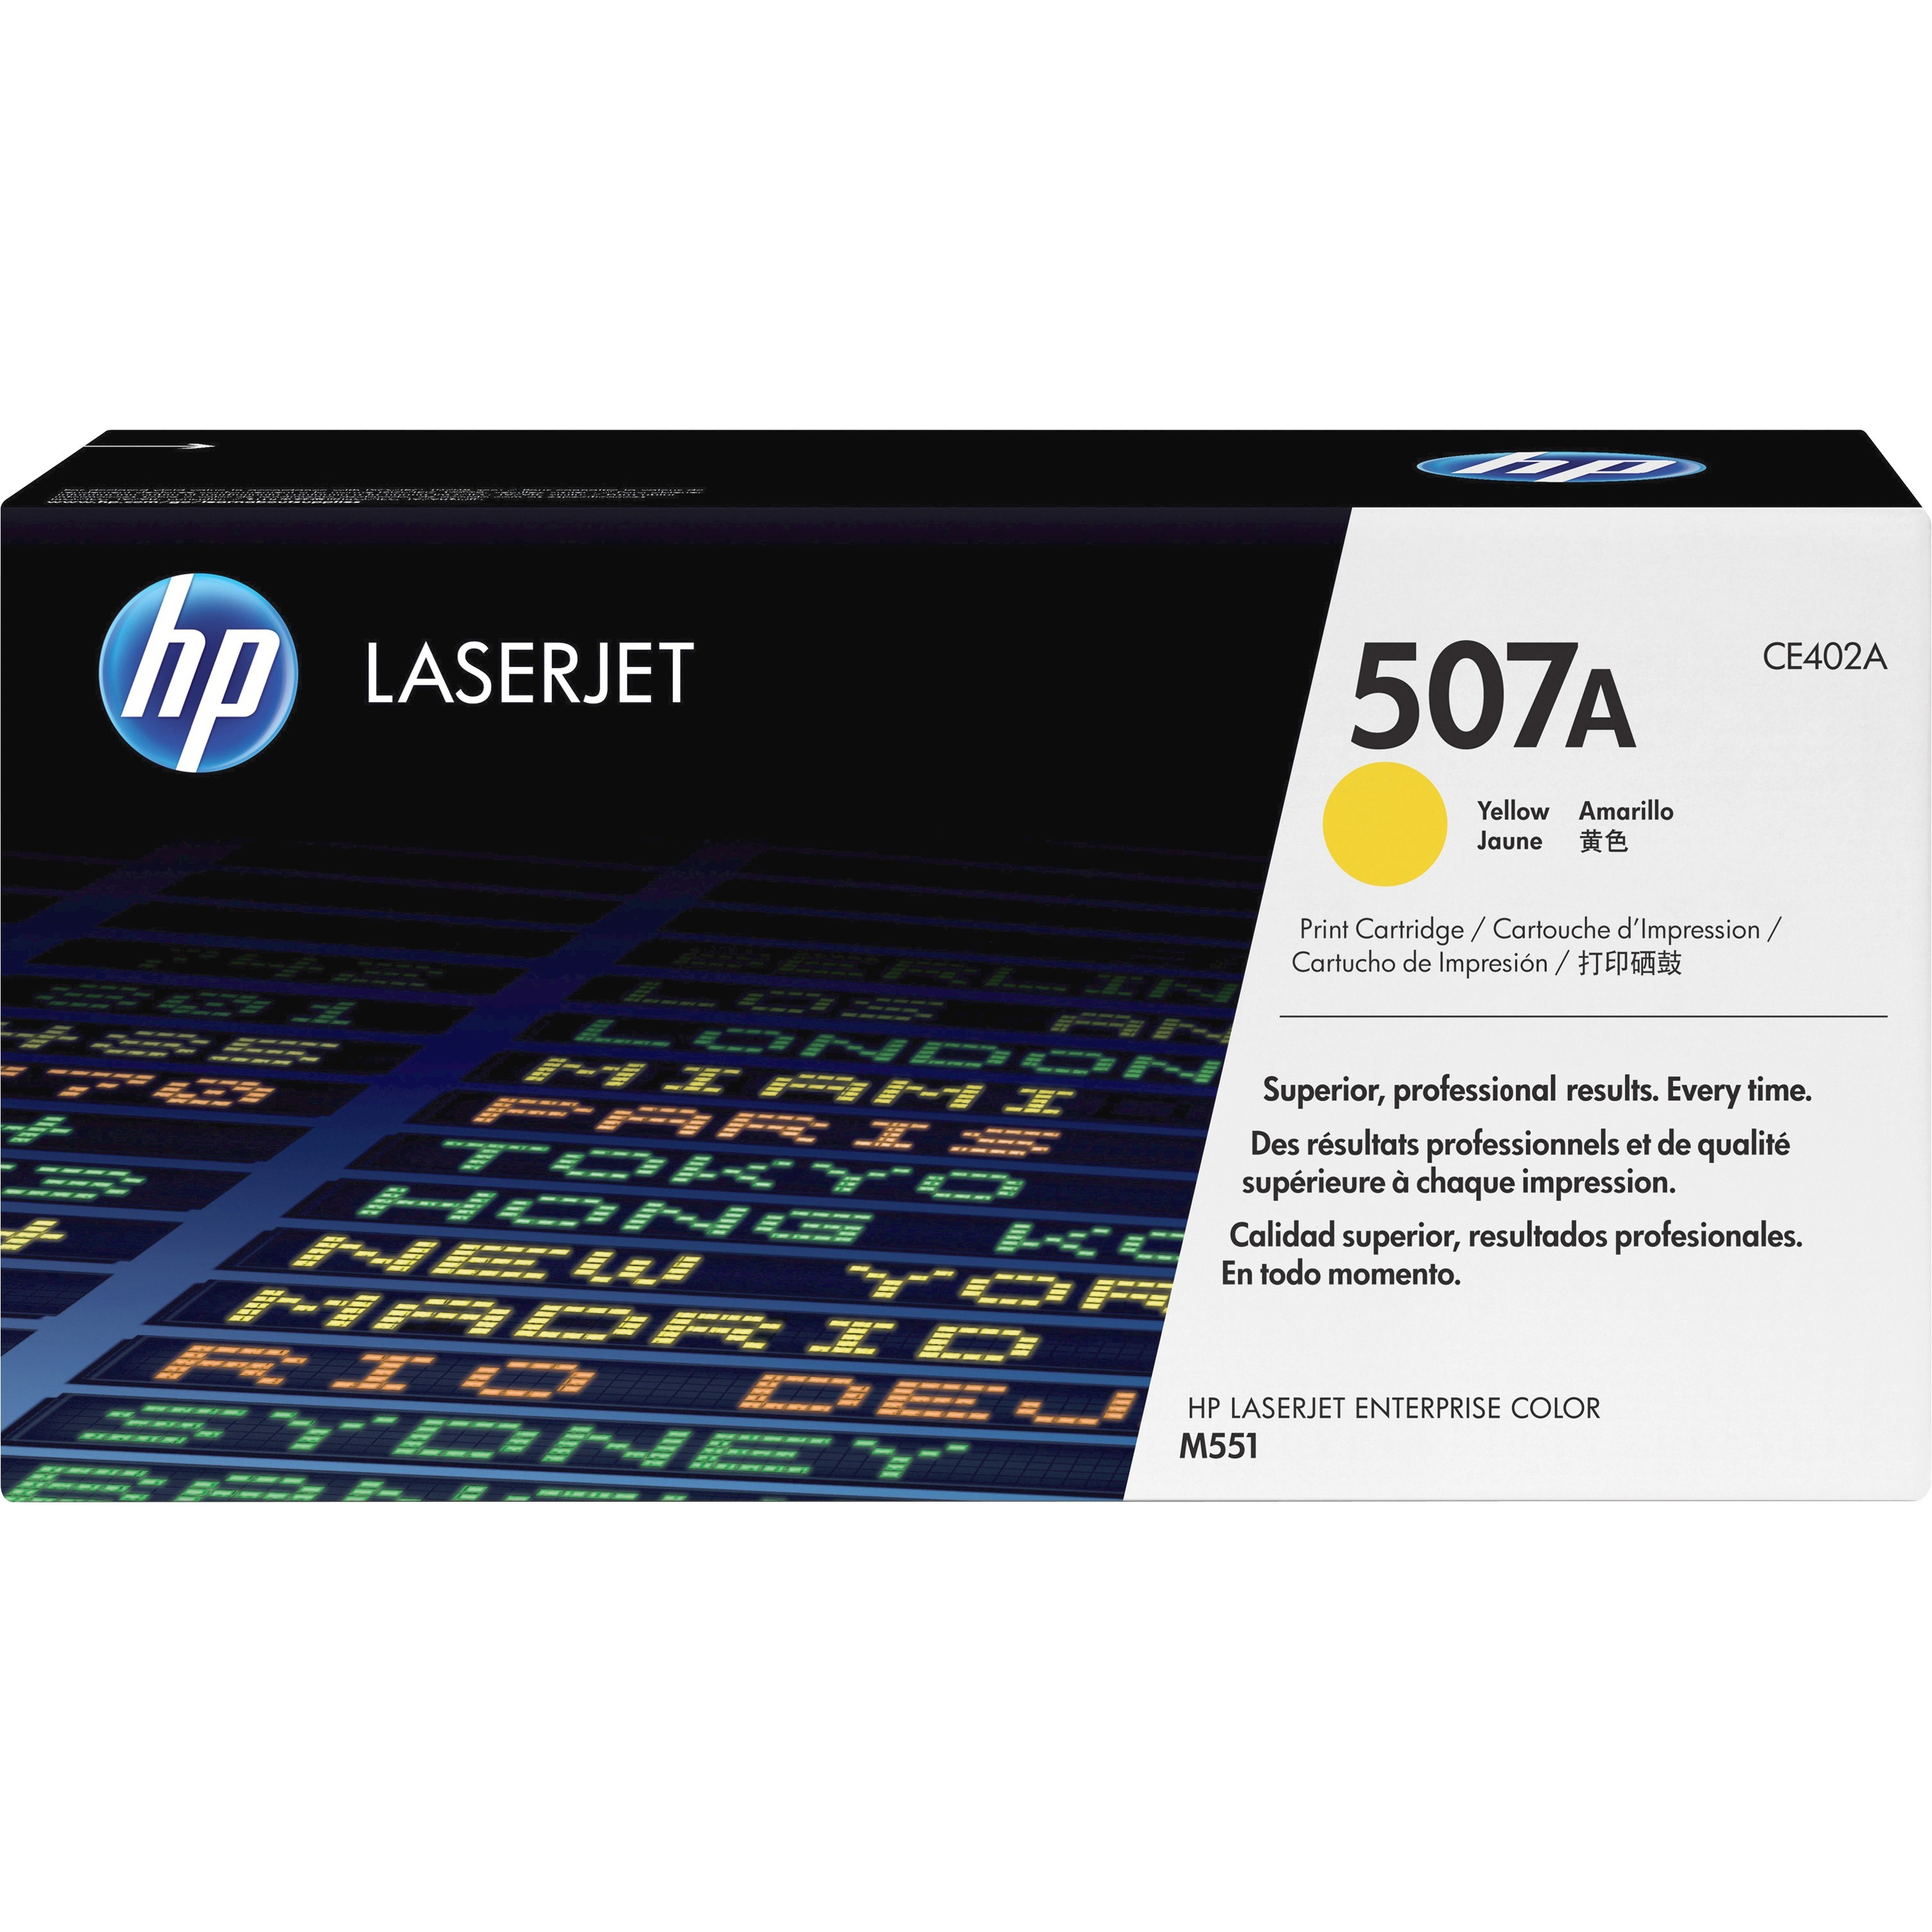 HP 507A Toner Cartridge - Yellow - Laser - 6000 Page - 1 Pack